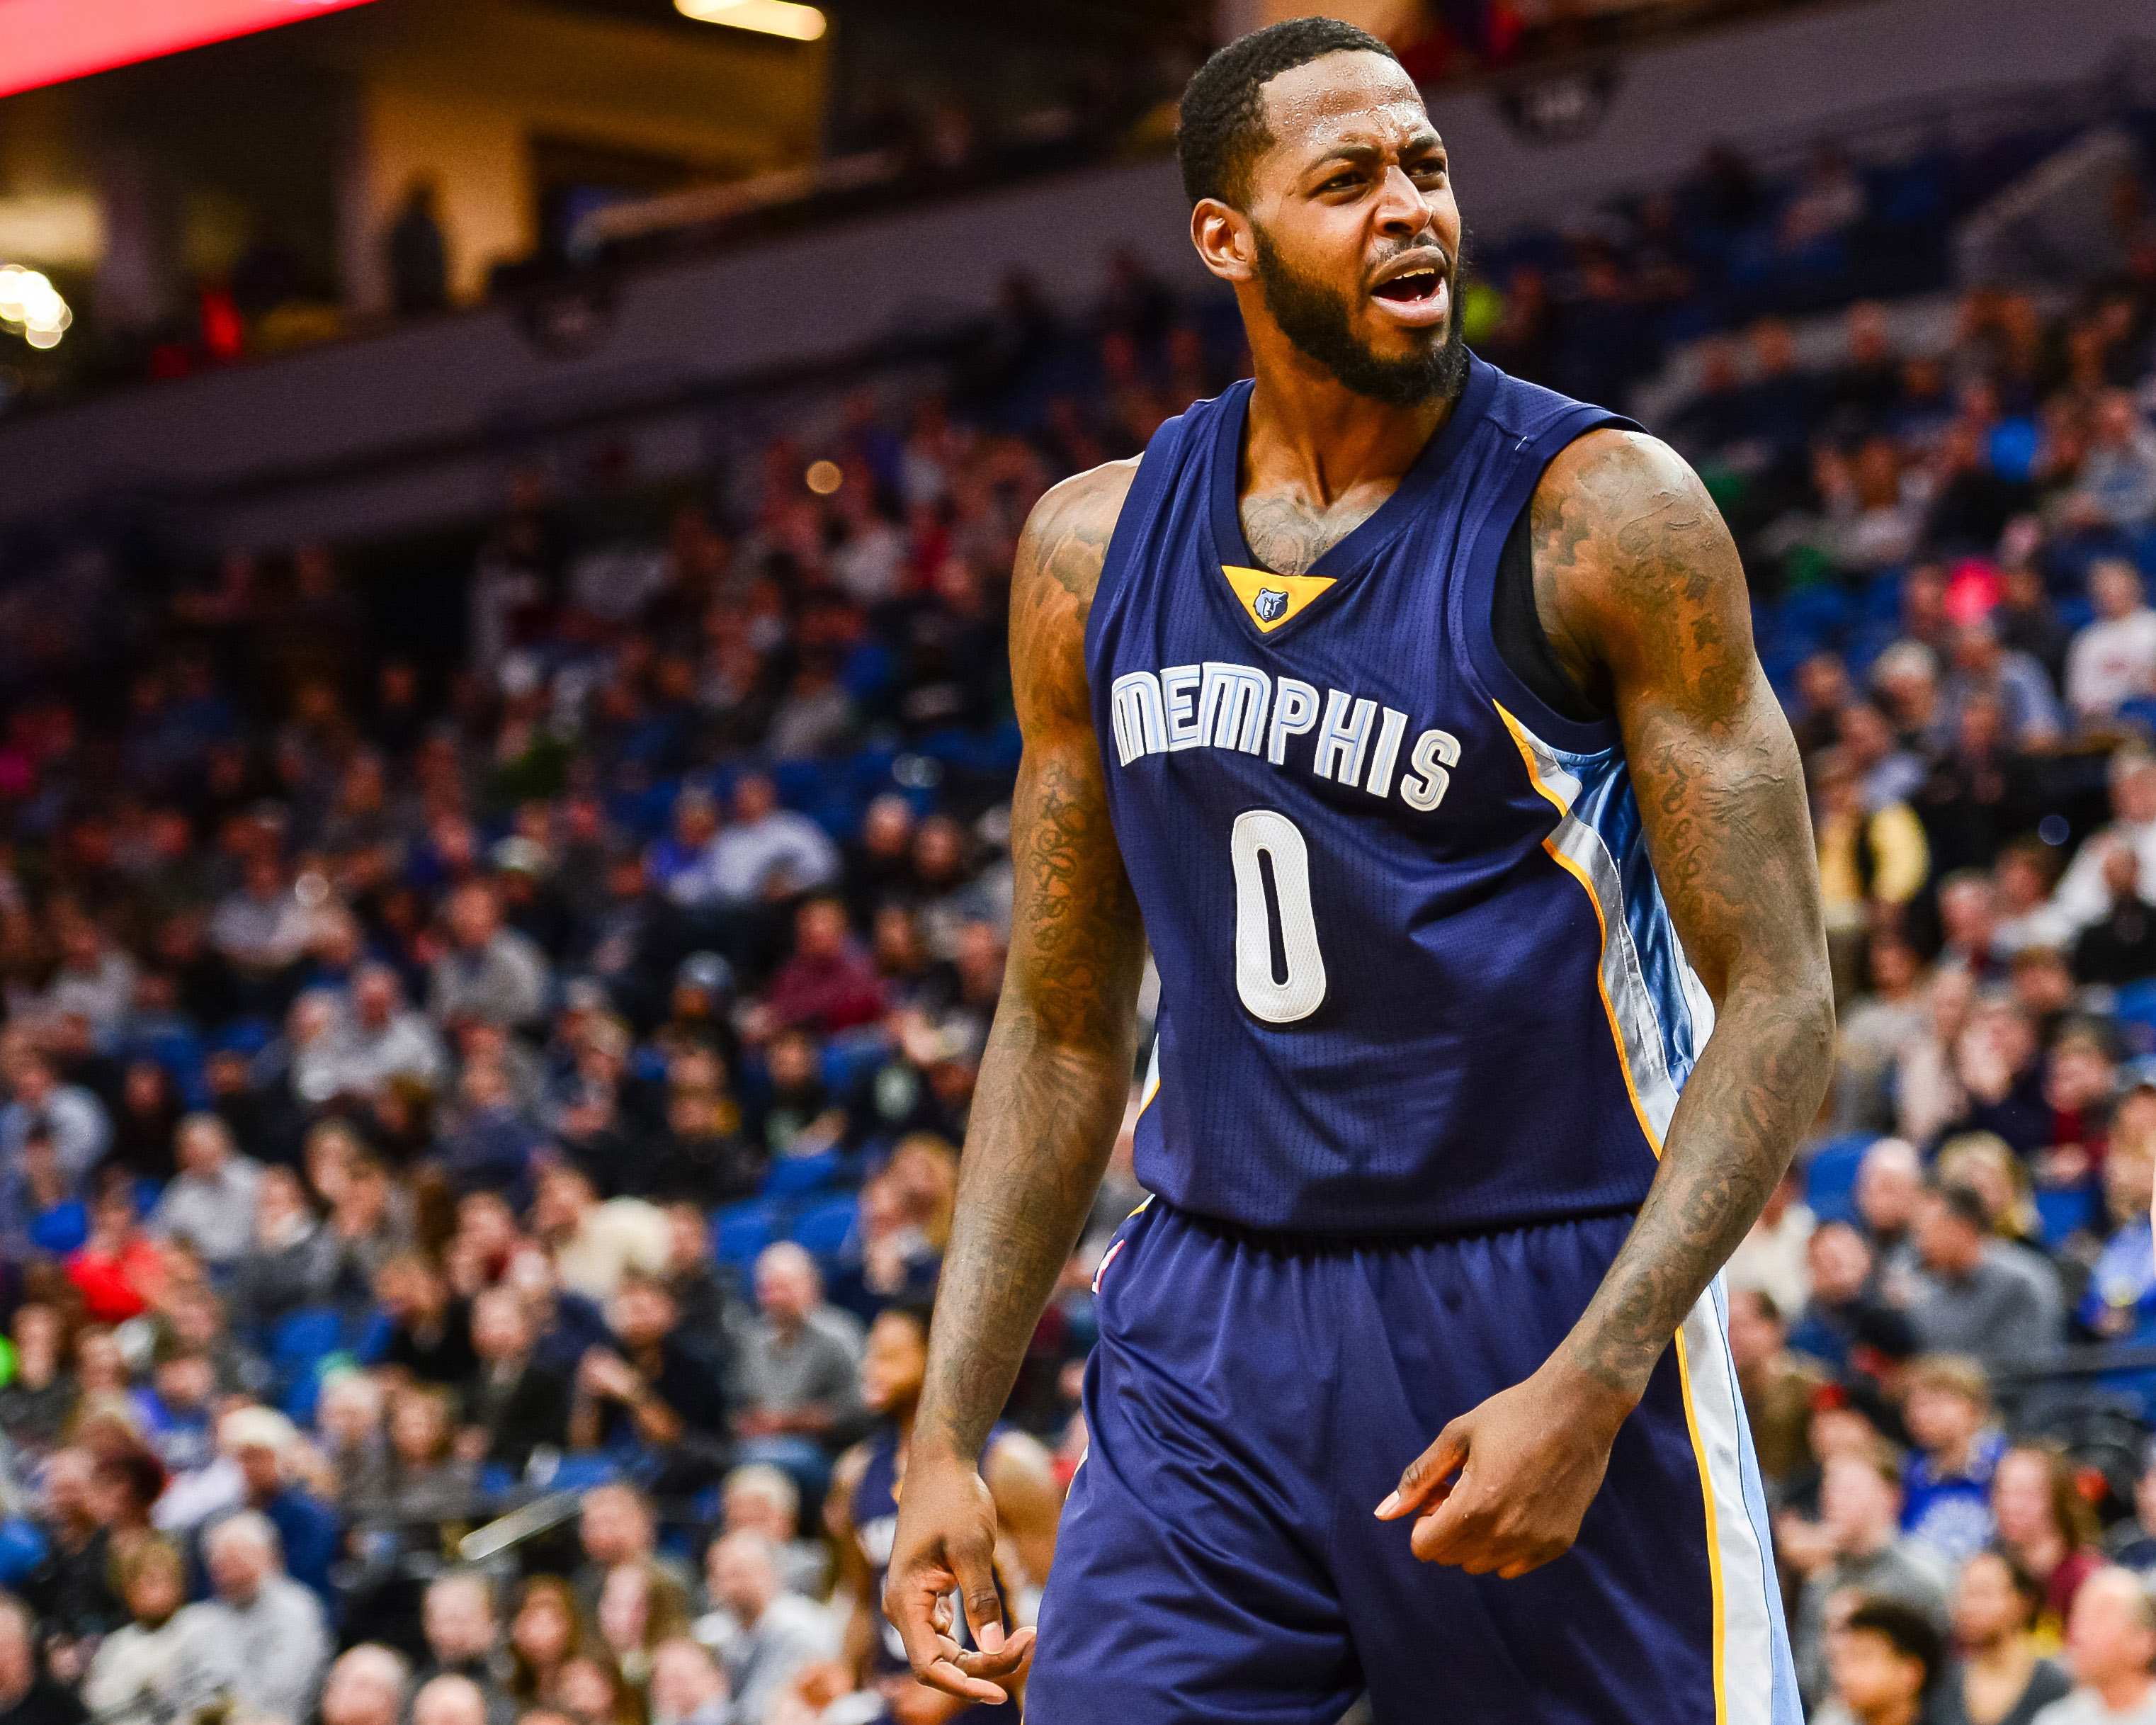 9860032-nba-memphis-grizzlies-at-minnesota-timberwolves